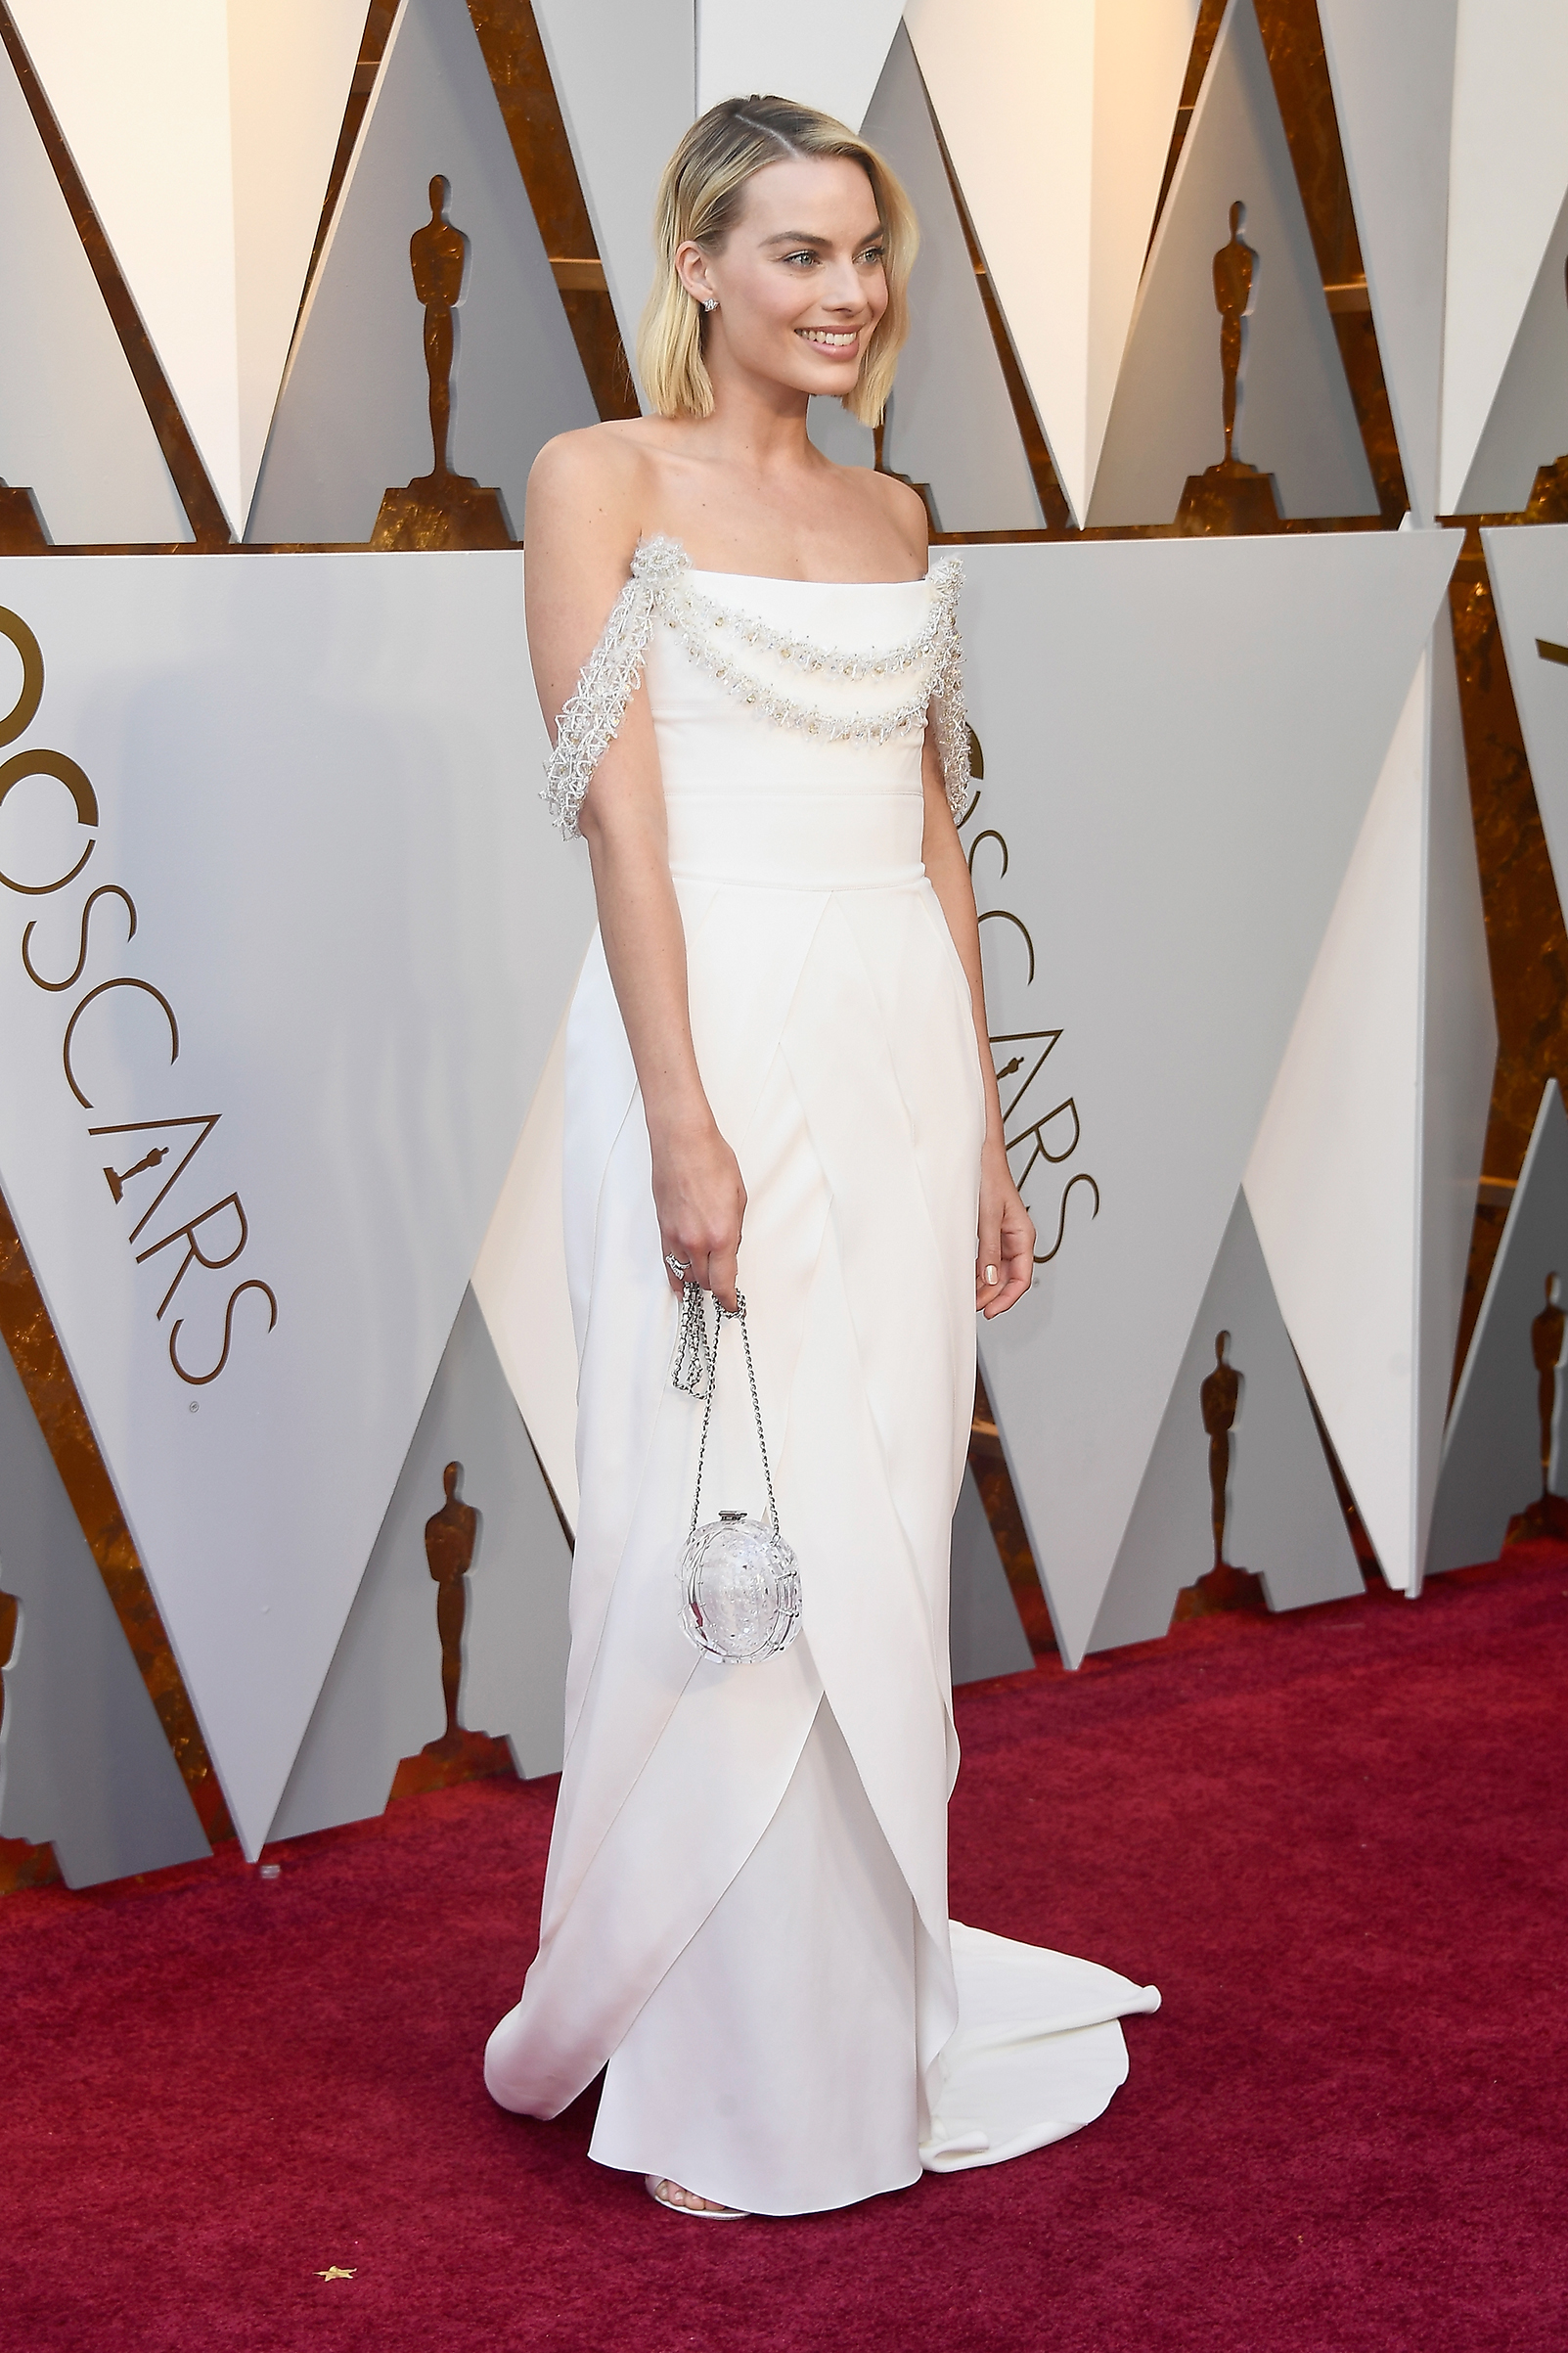 Margot Robbie attends the 90th Annual Academy Awards at Hollywood & Highland Center on March 4.